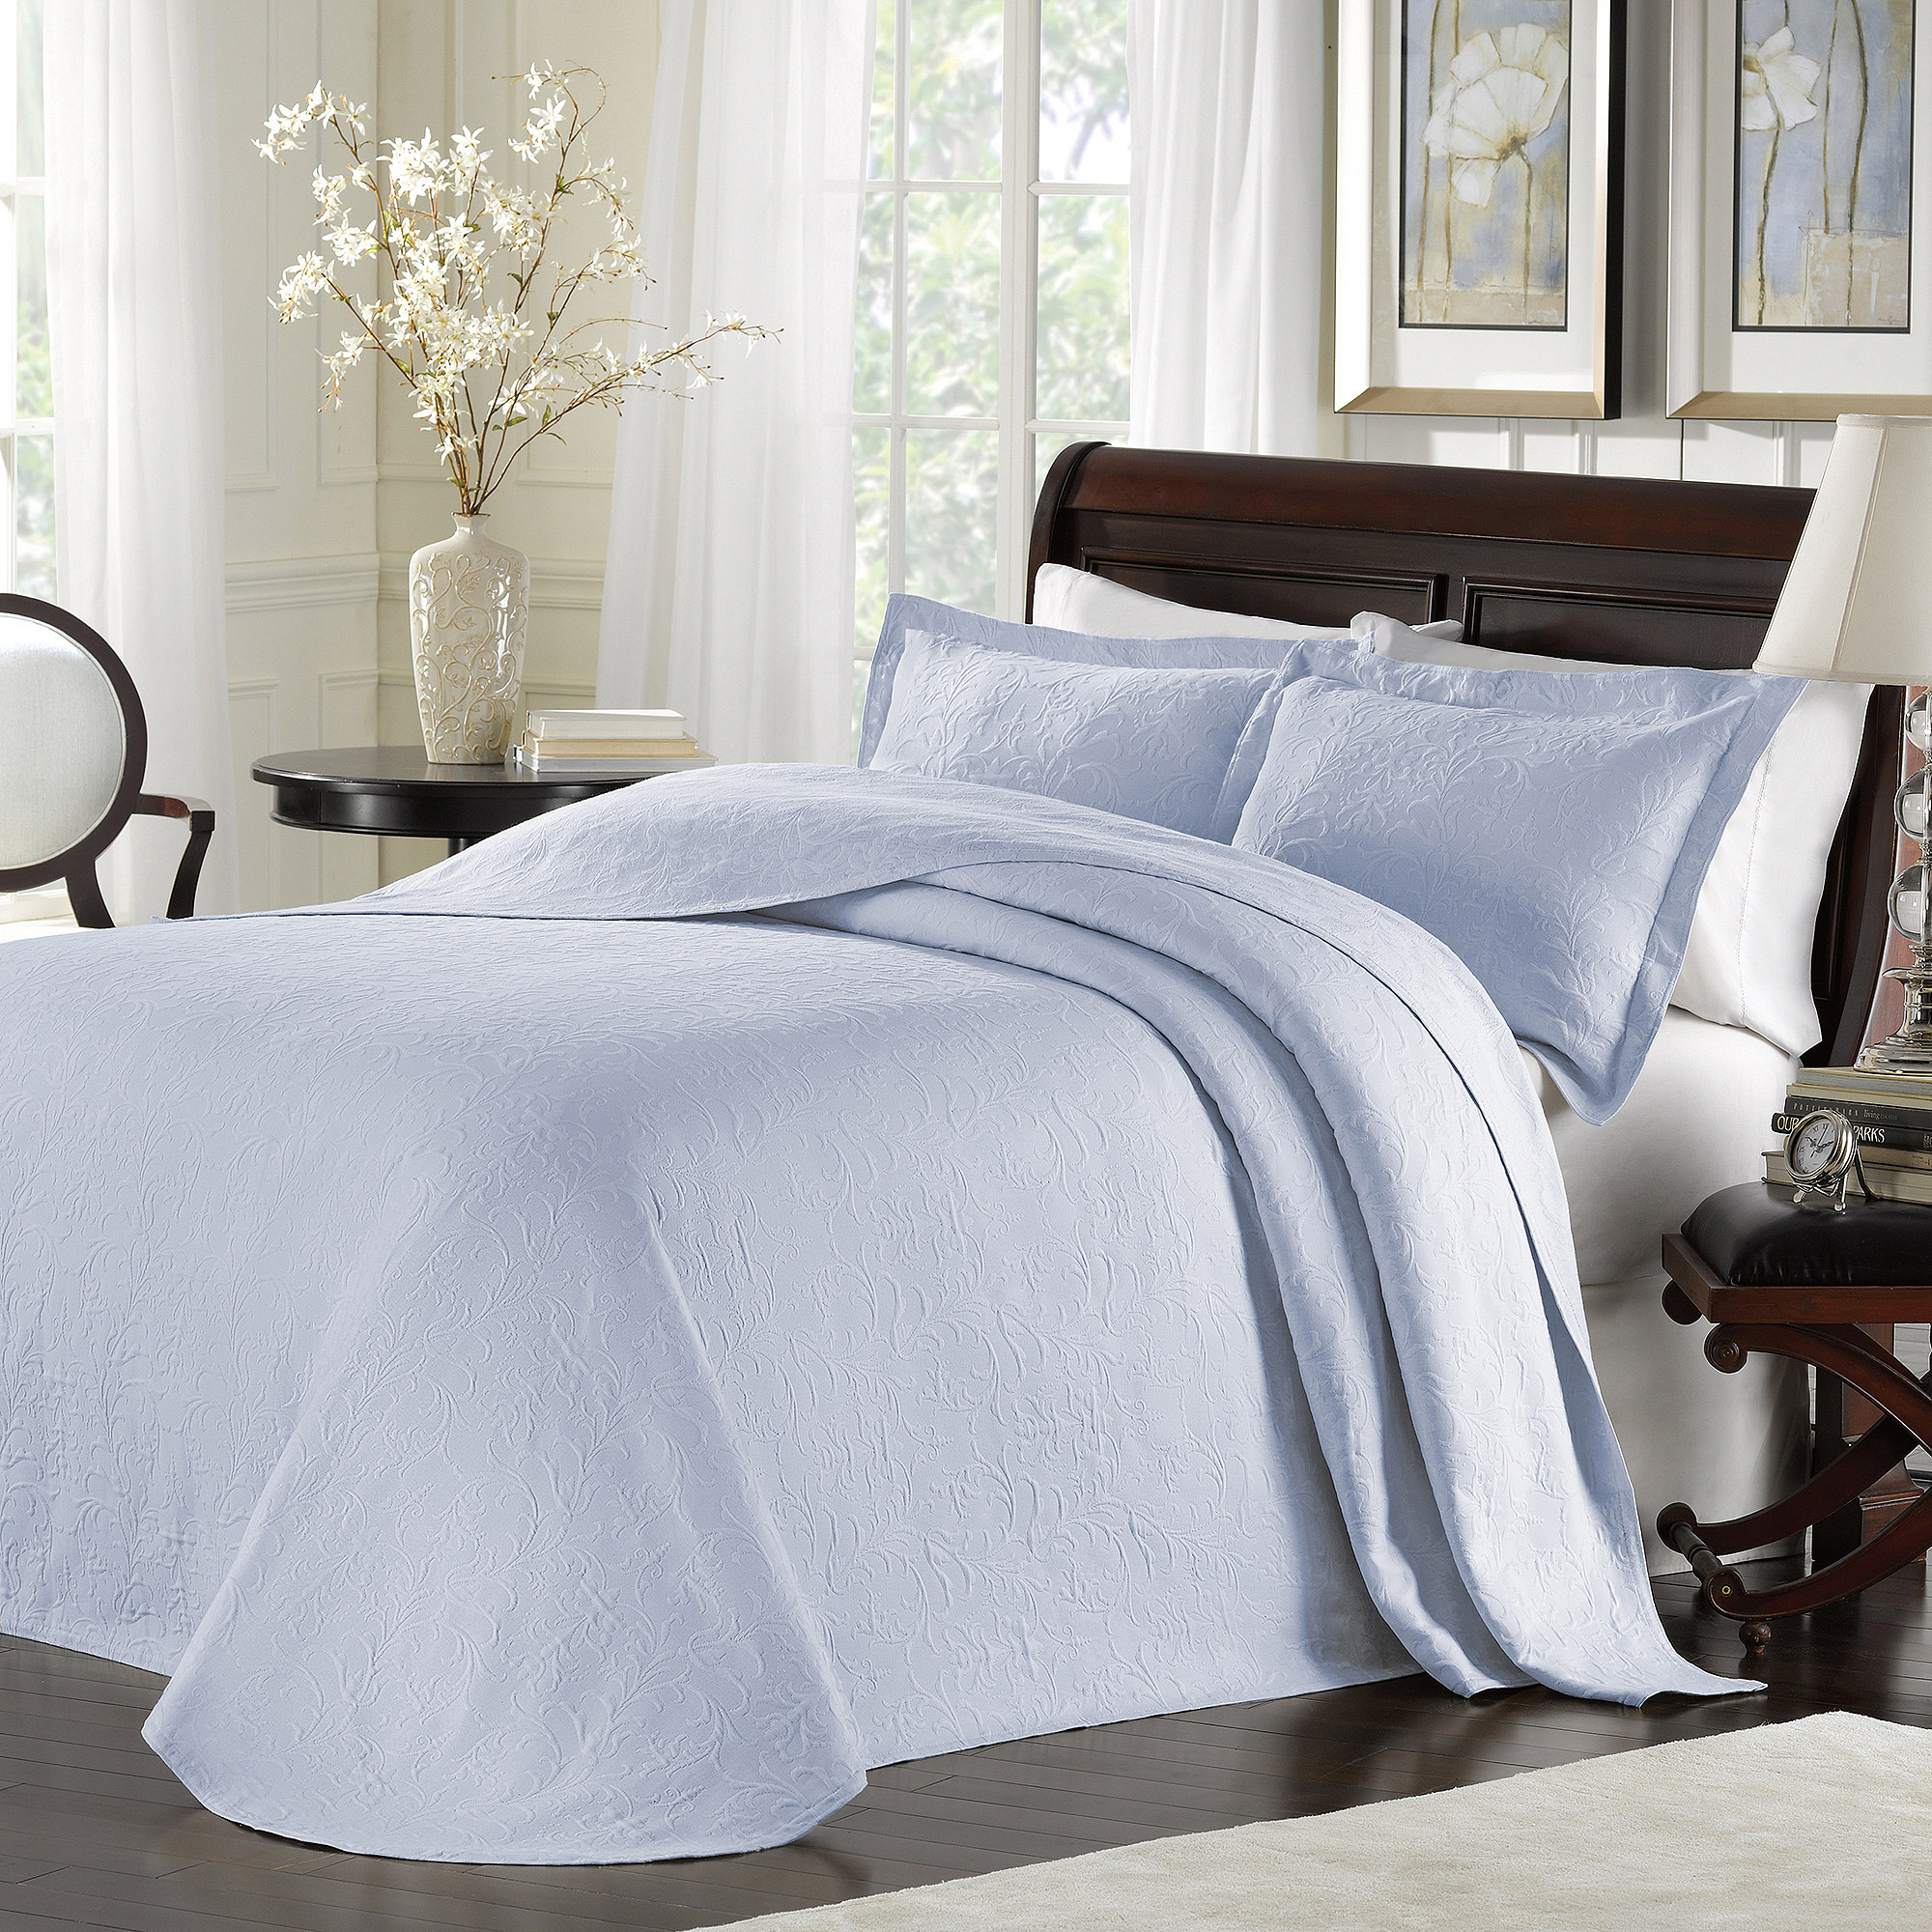 LaMont Home Majestic Collection U2013 100% Cotton Matelassé Bedspread